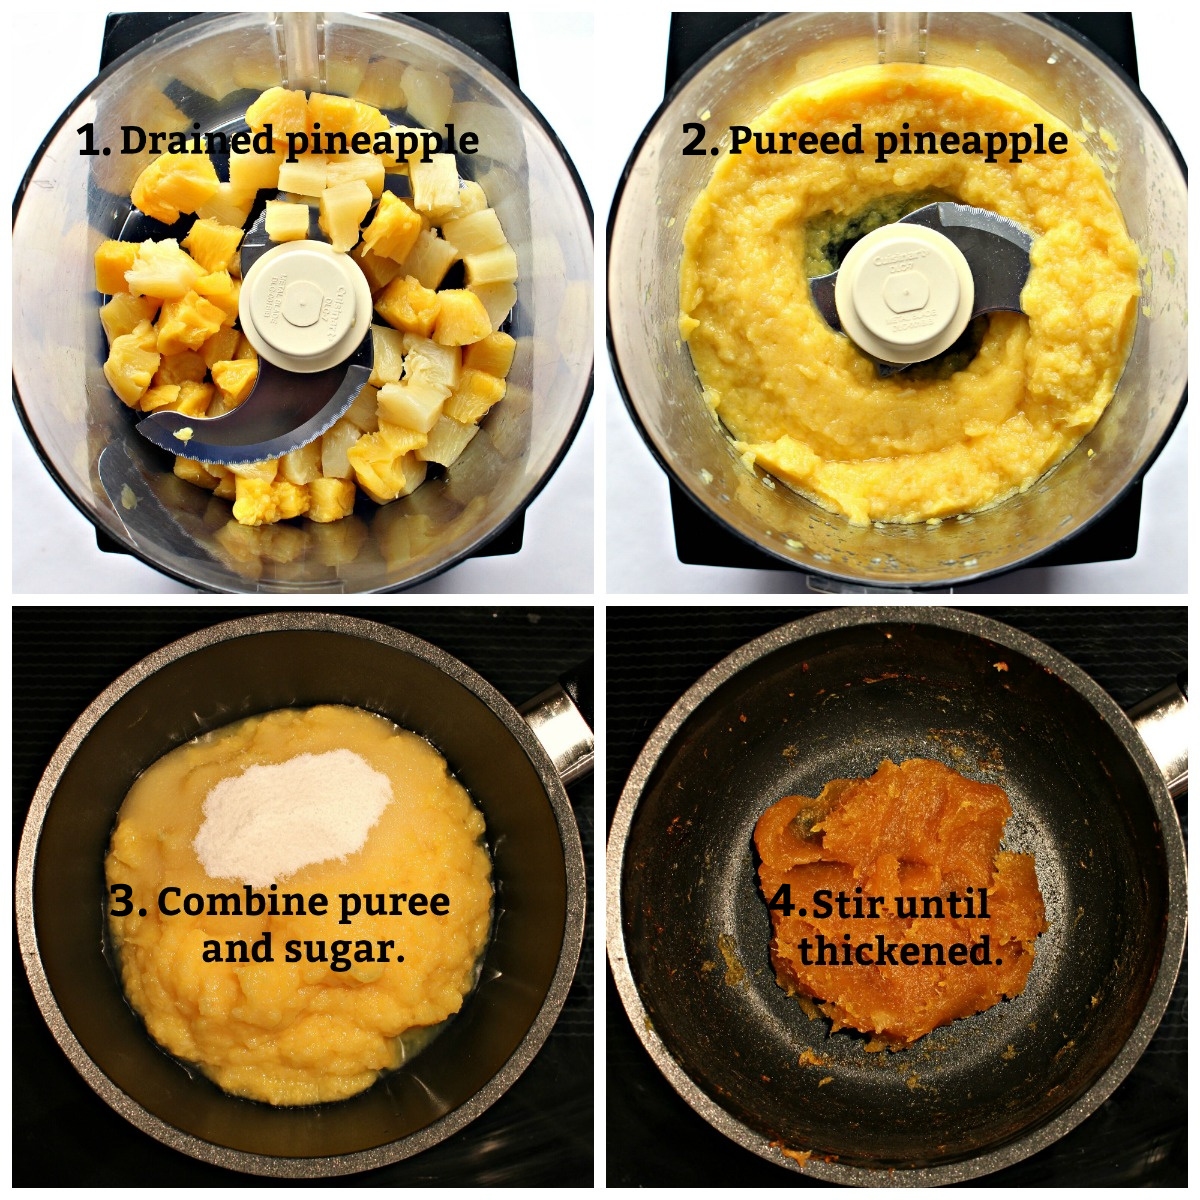 Step by step image collage making pineapple jam in food processor : drain, puree, cook until thickened.